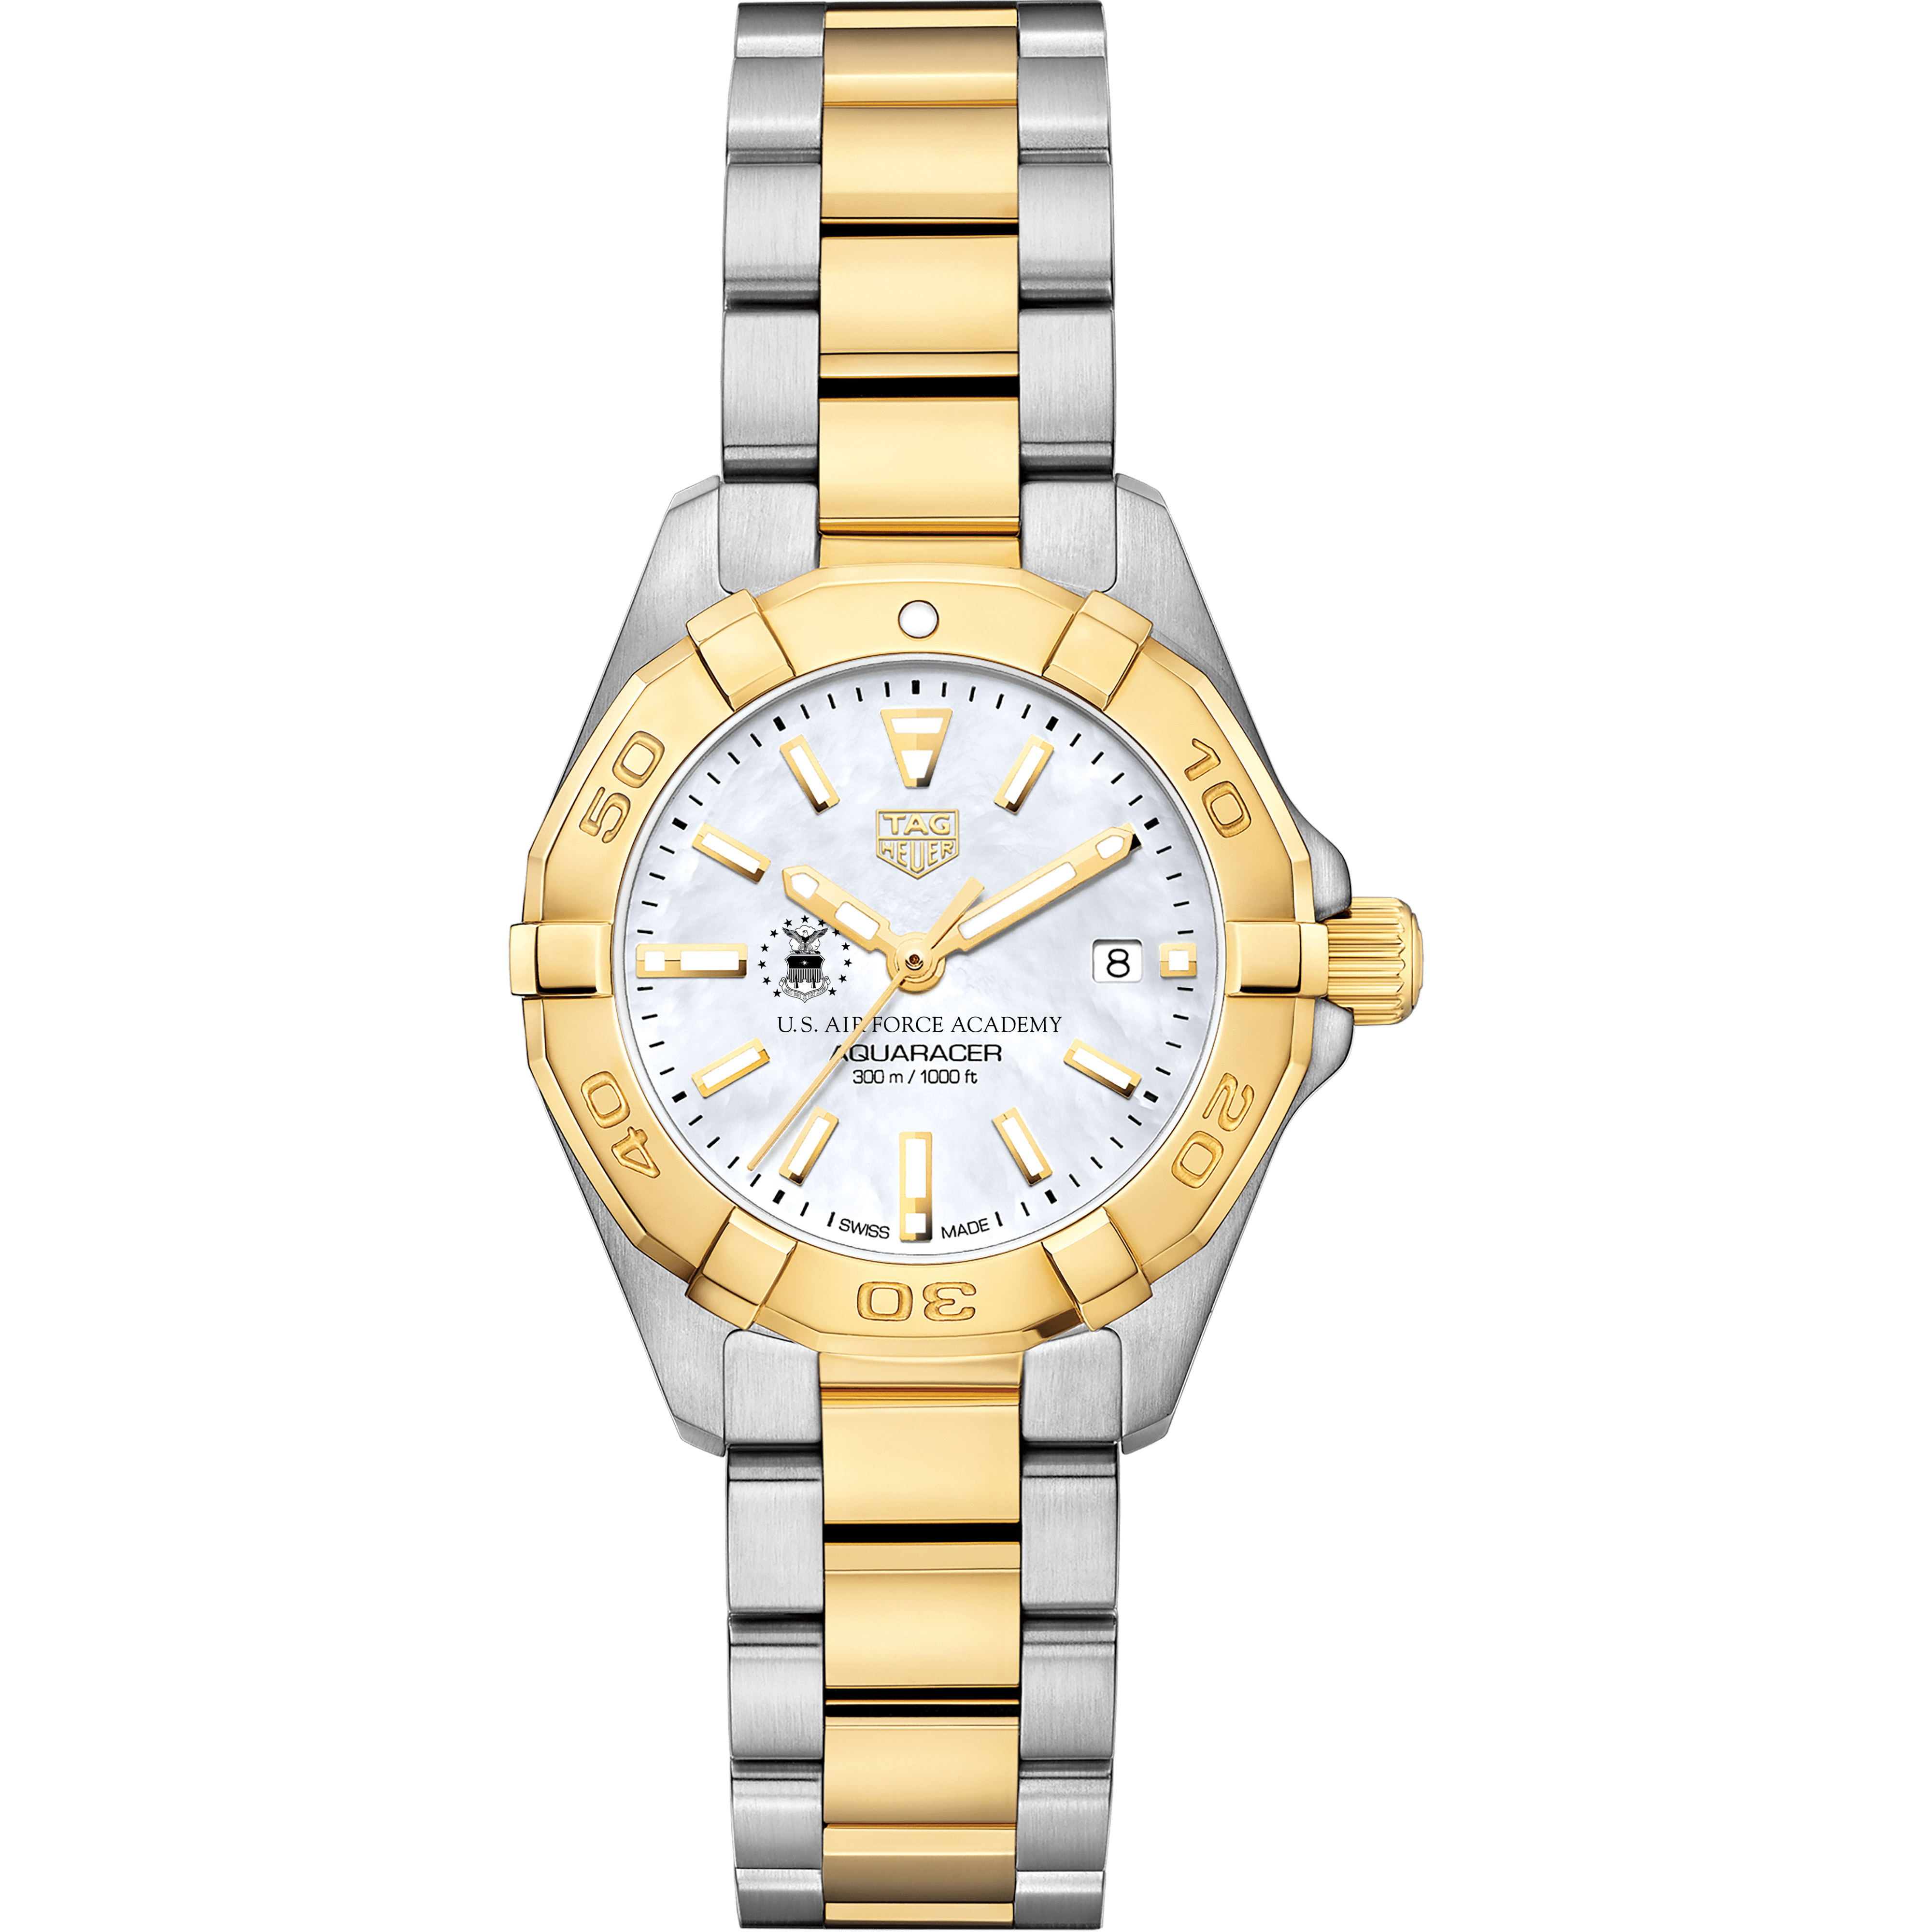 US Air Force Academy TAG Heuer Two-Tone Aquaracer for Women - Image 2